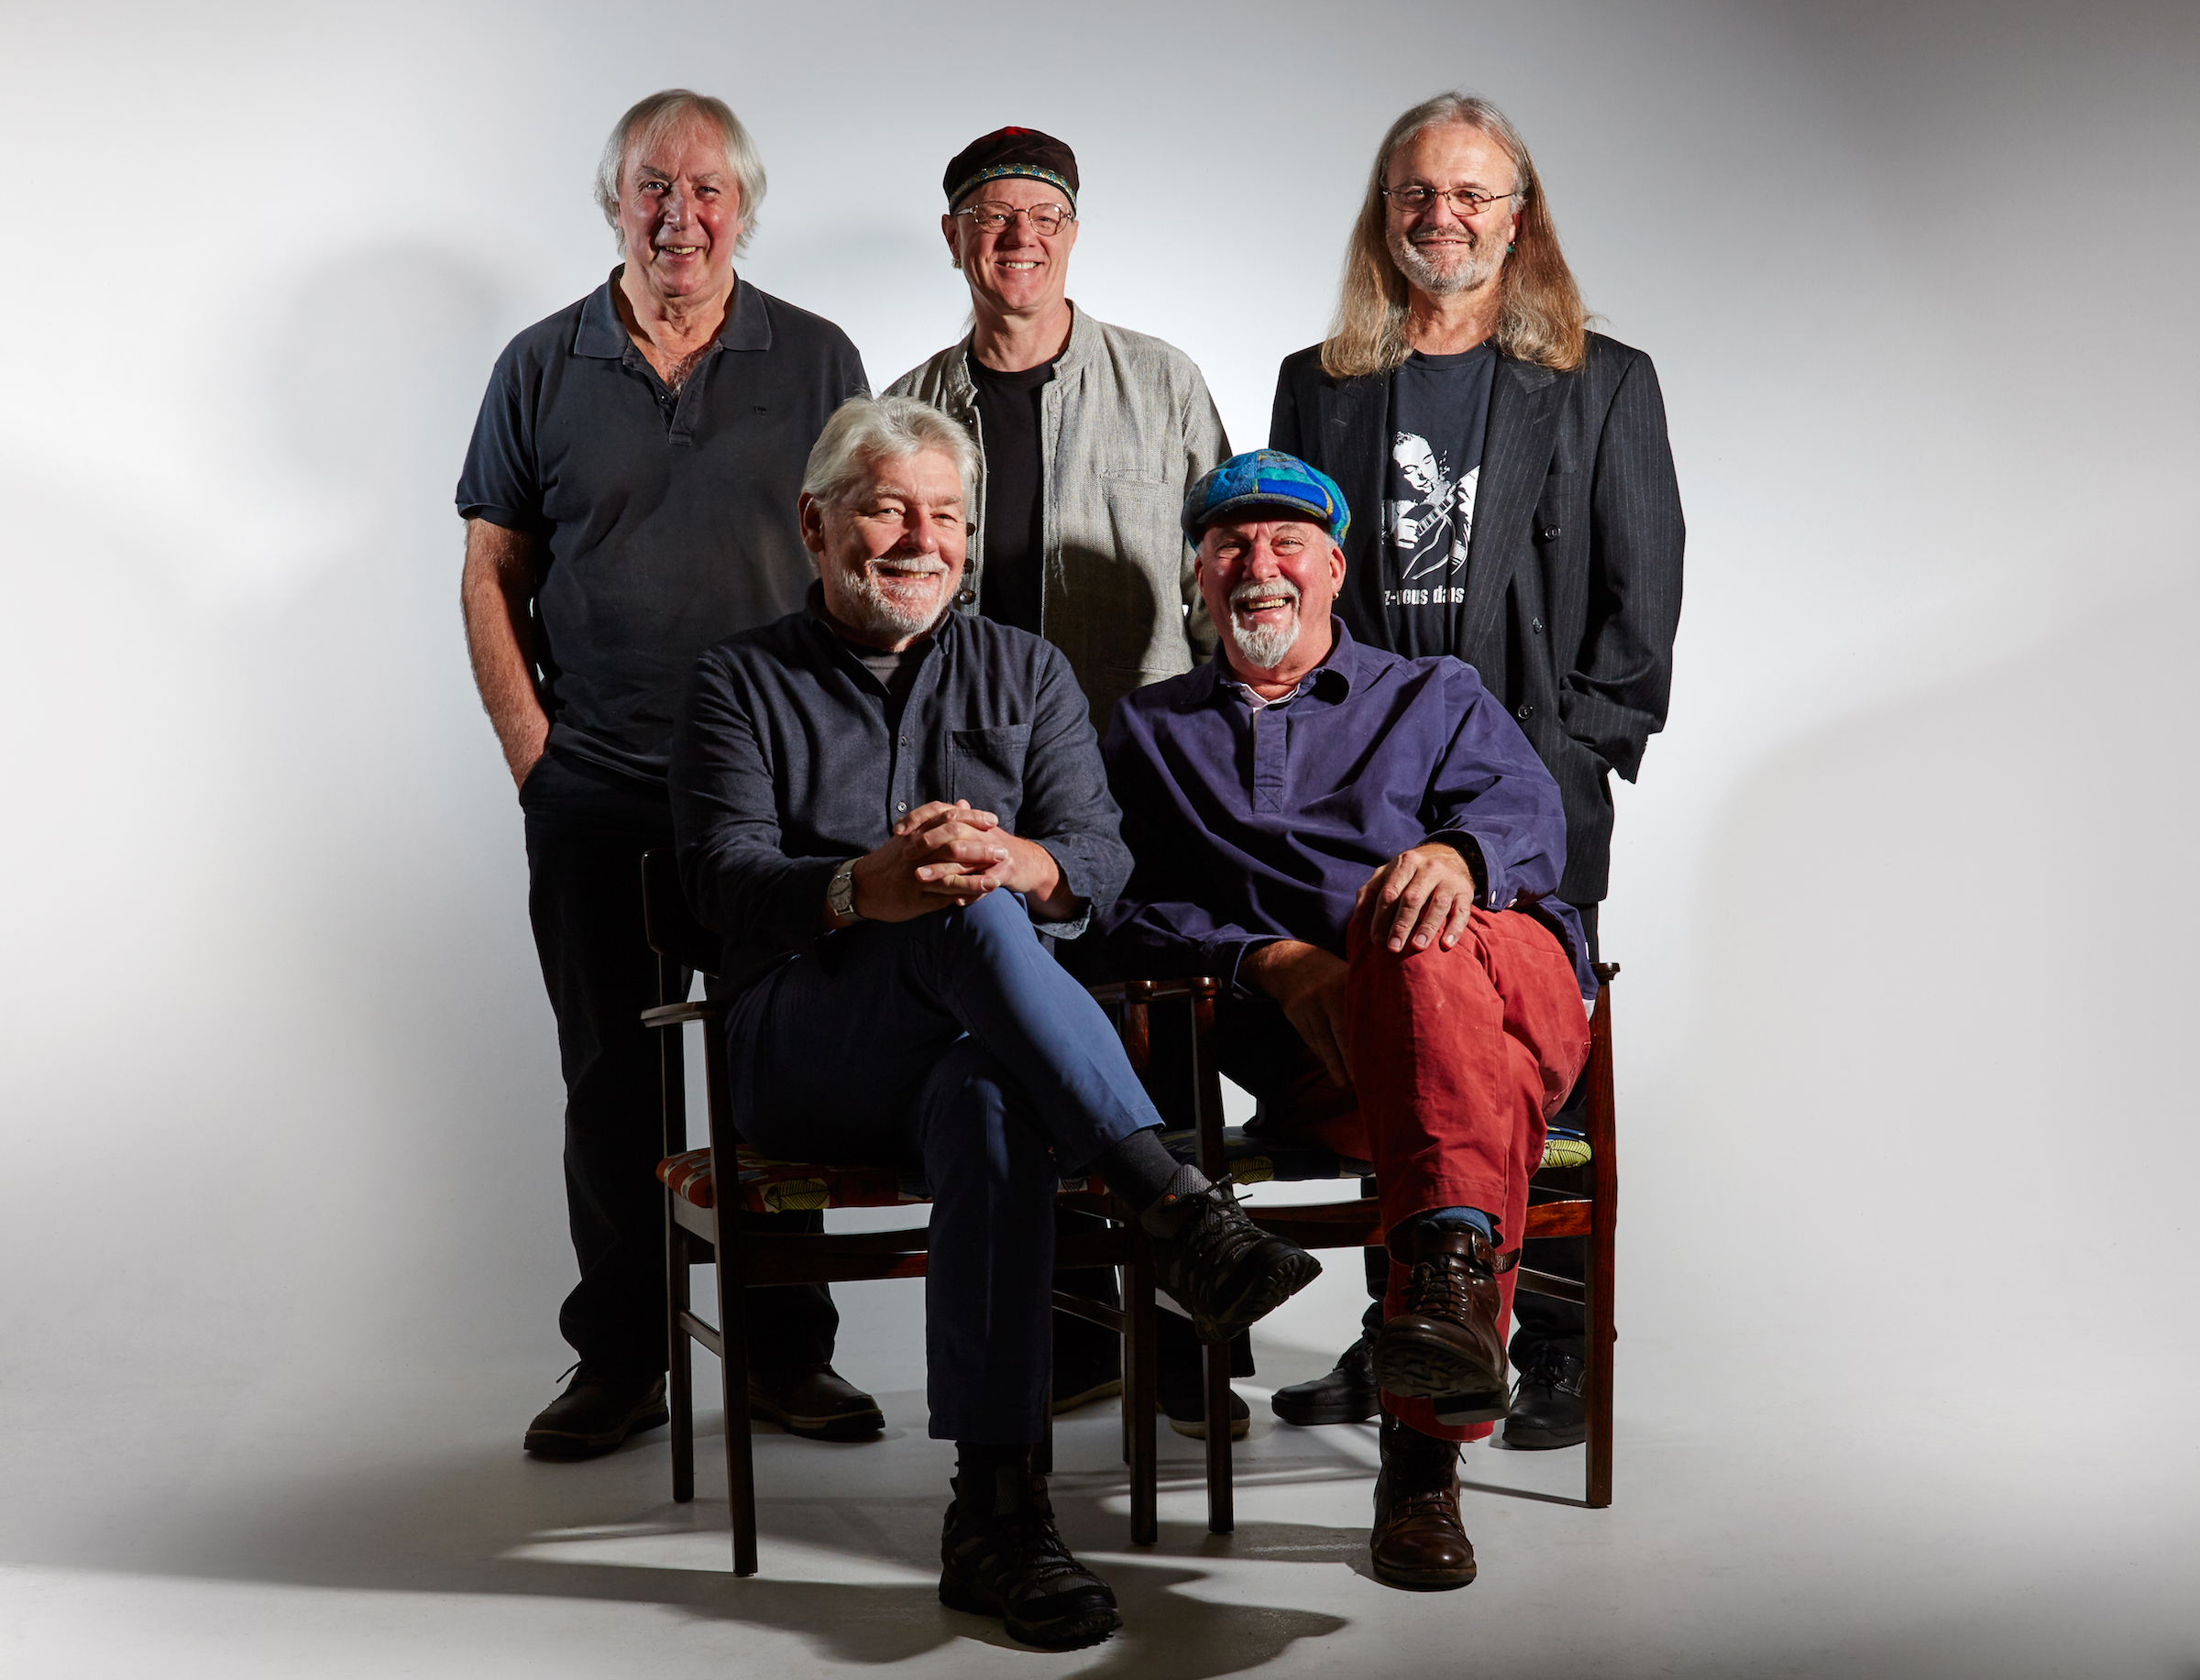 Fairport Convention 2019 Broch